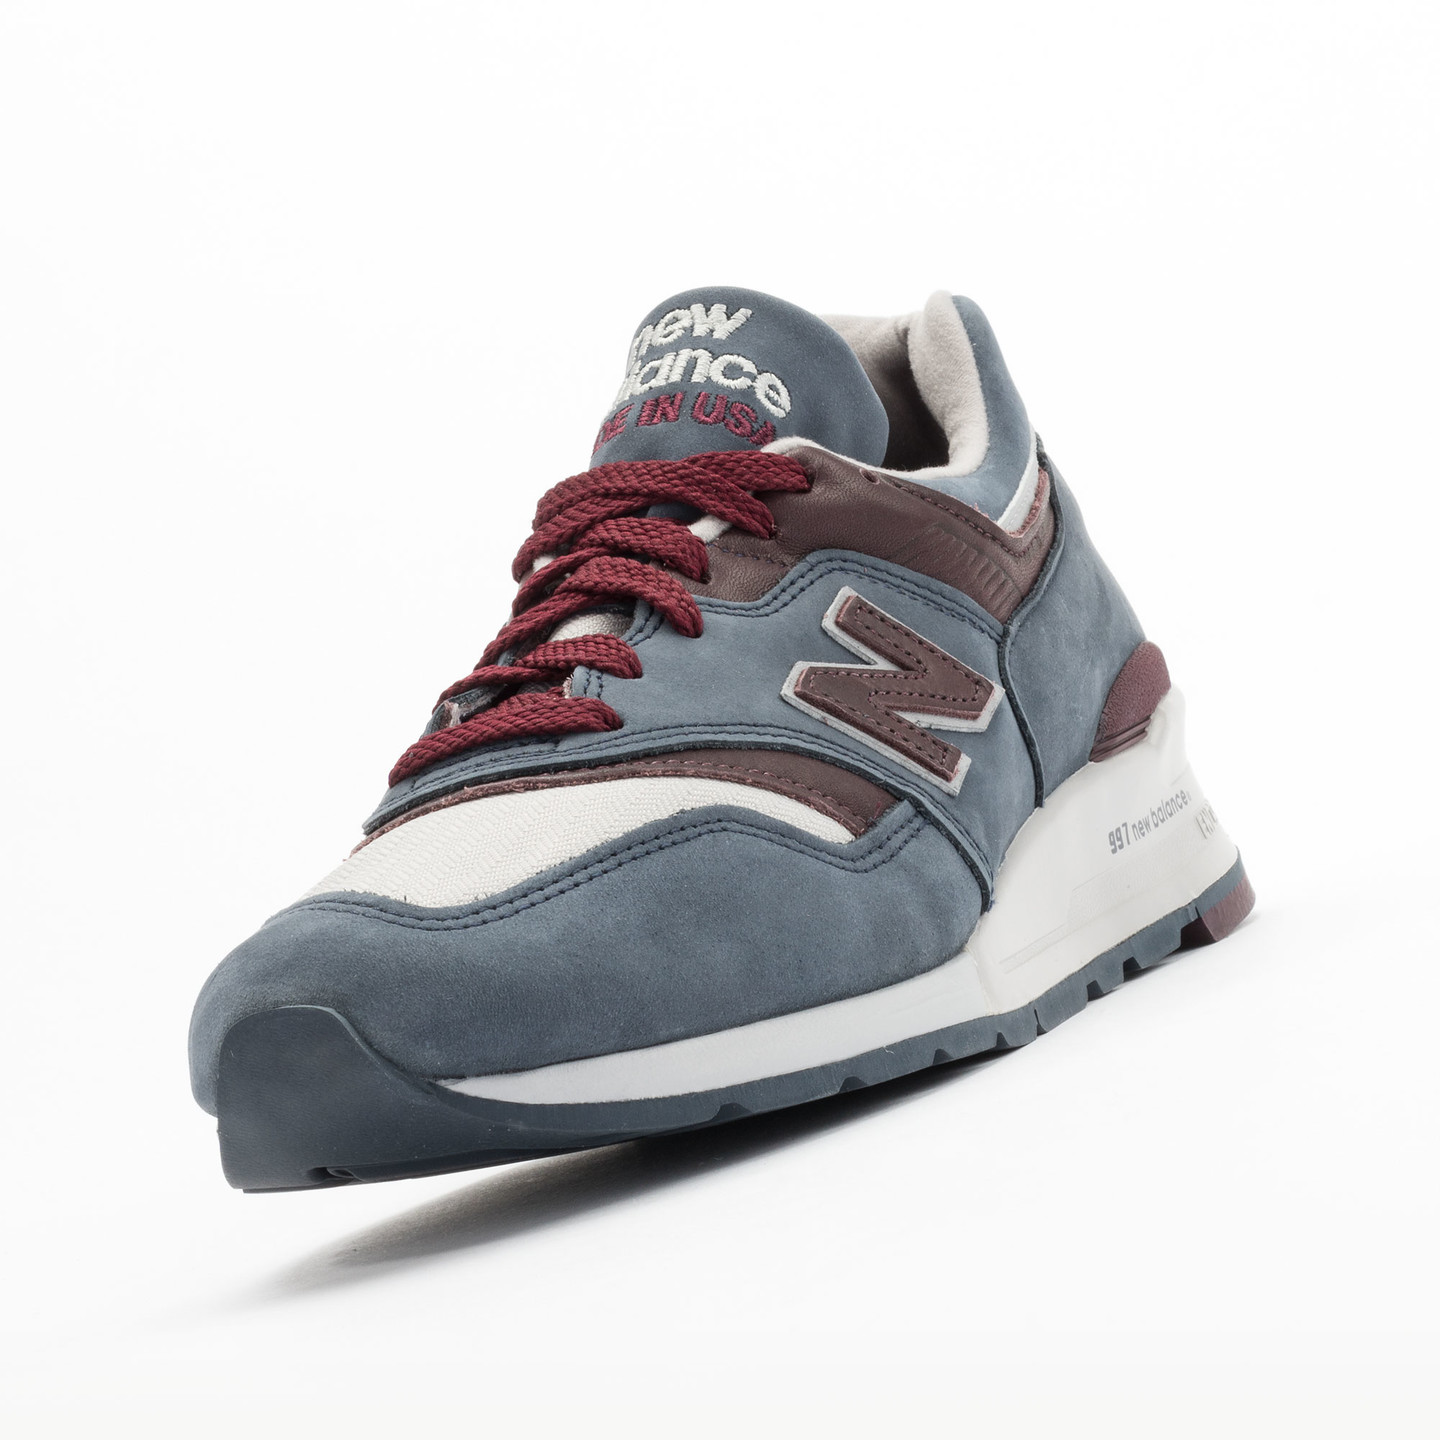 New Balance M997 DGM - Made in USA Grey Steel / Burgundy M997DGM-46.5